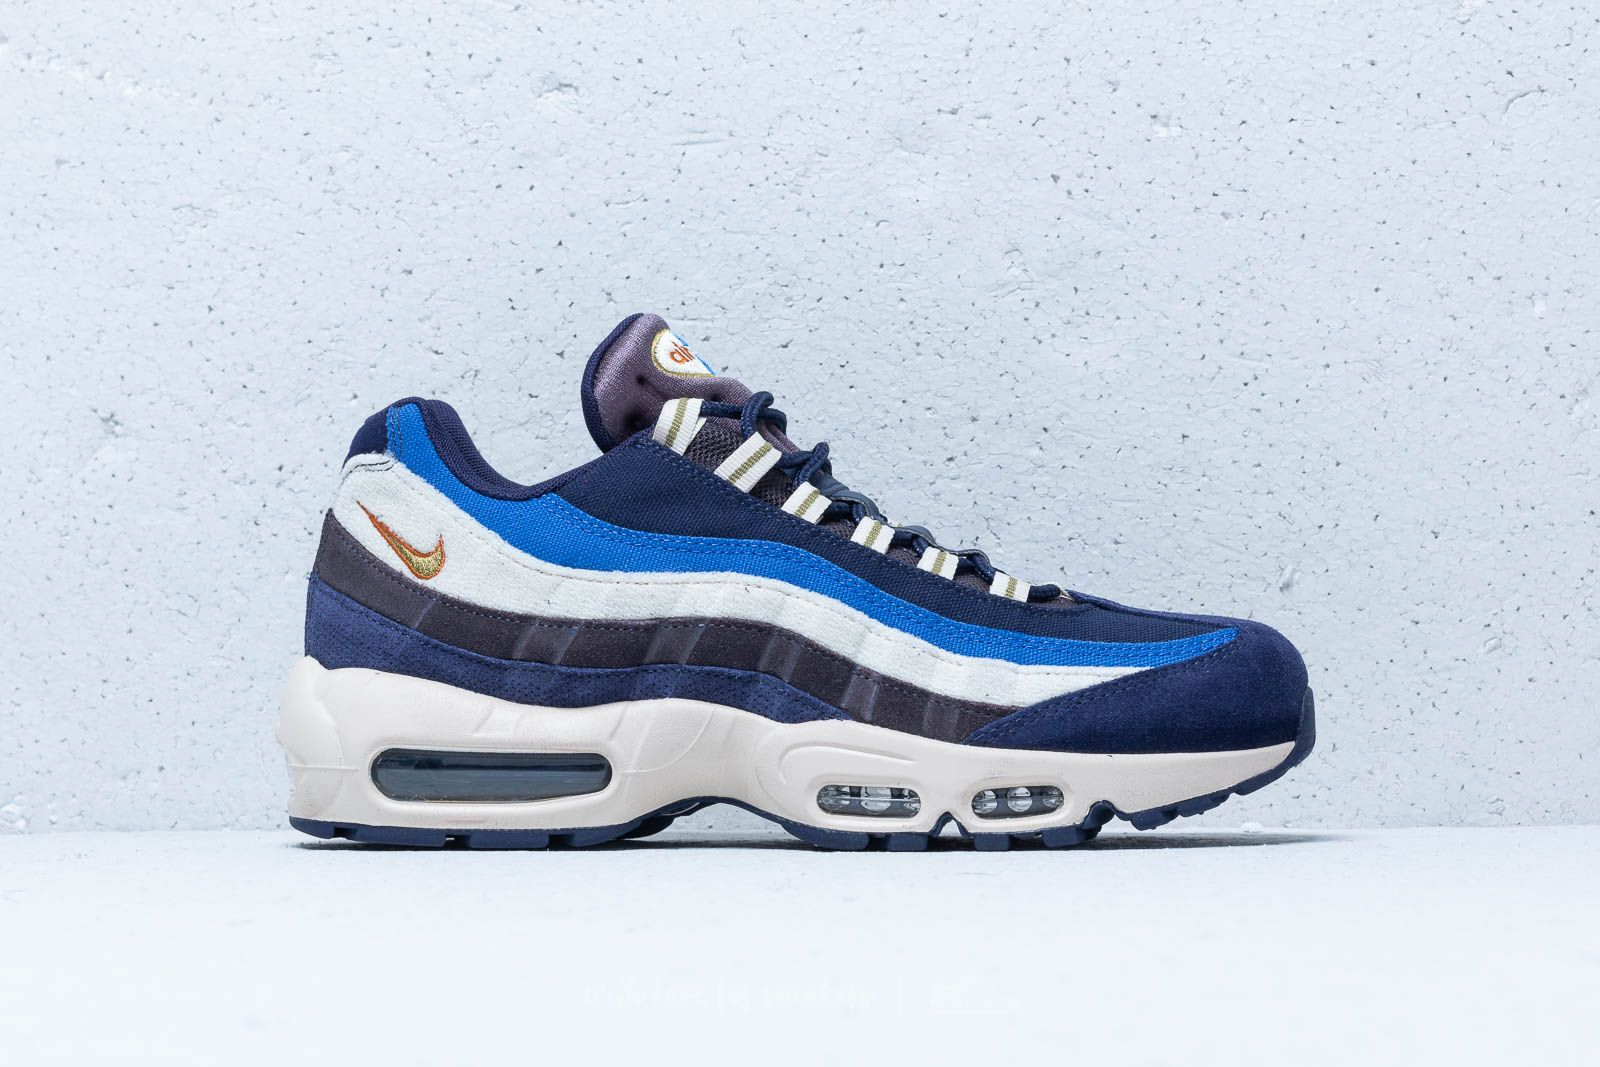 blue and white 95 air max Shop Clothing